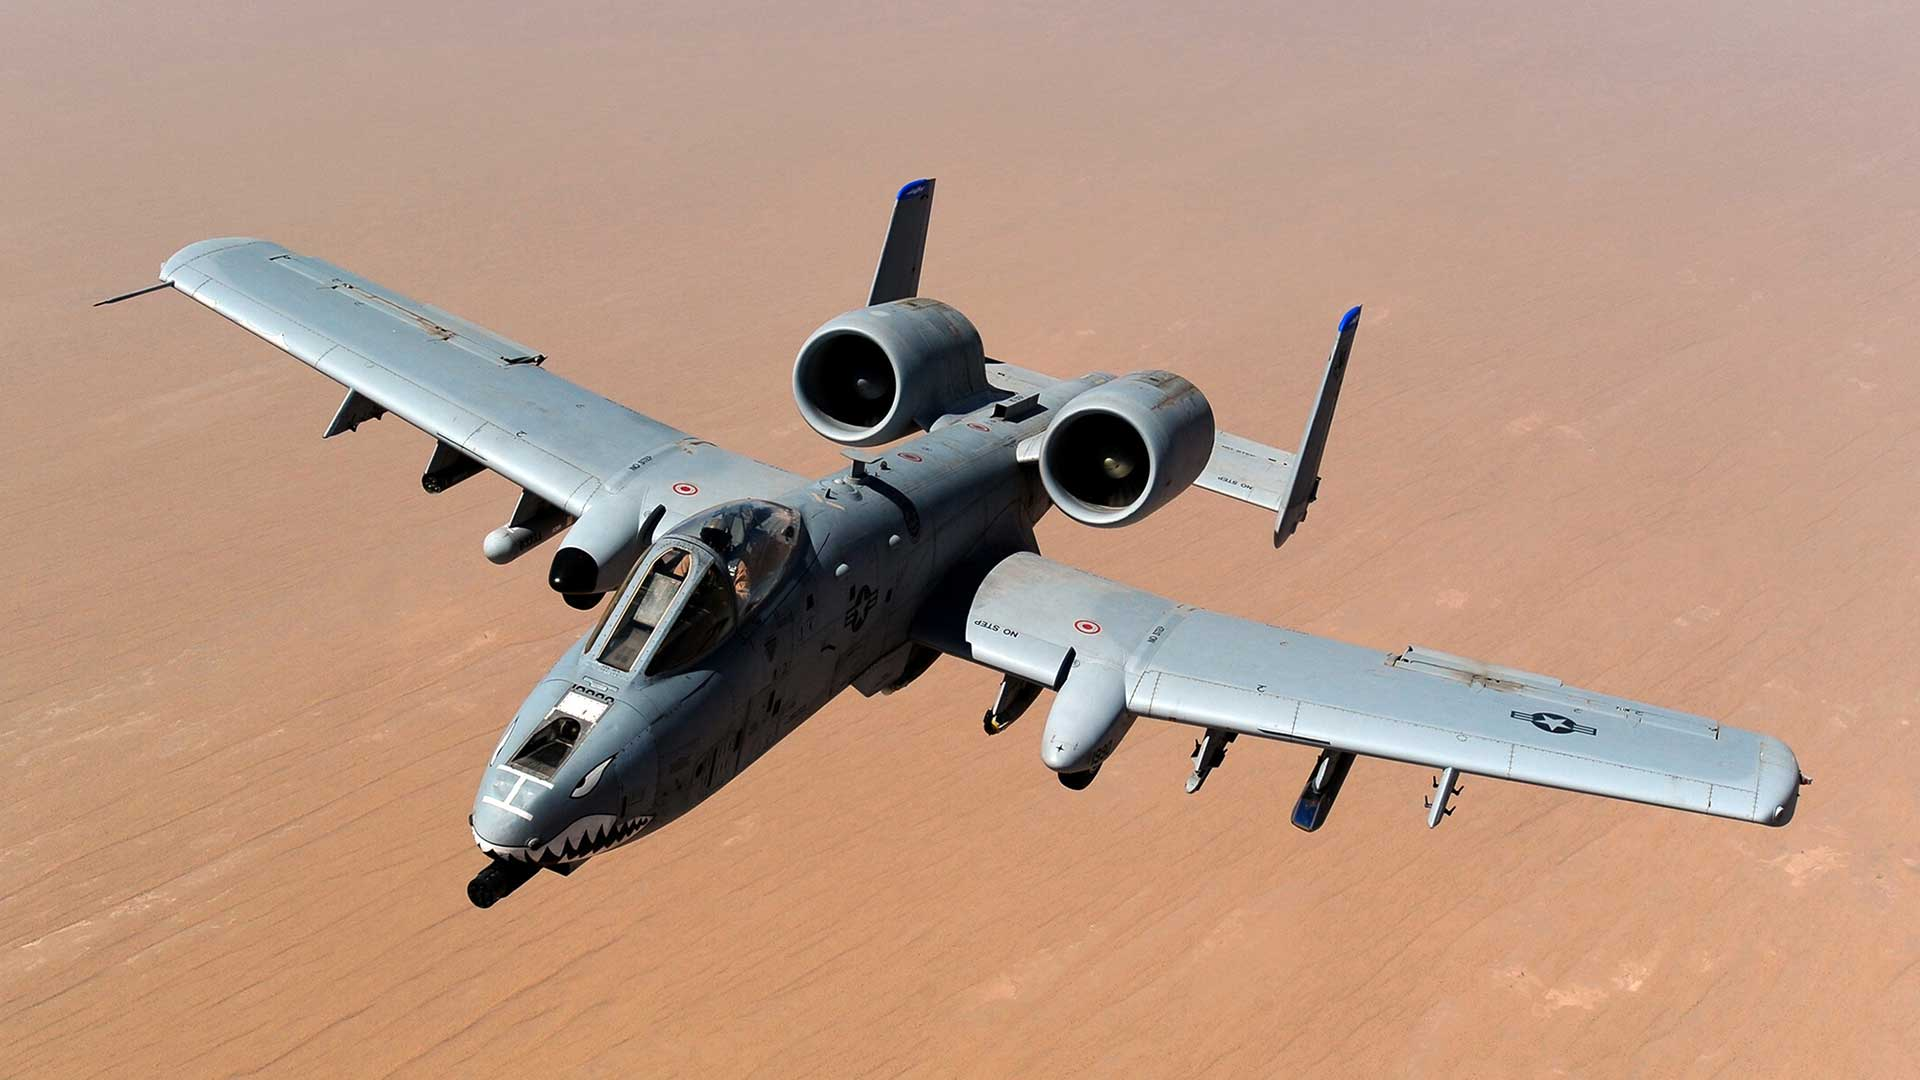 An A-10 Thunderbolt II from the 74th Fighter Squadron at Moody Air Force Base in Georgia flies over Afghanistan in this 2011 photo. The Pentagon plans to retire 44 A-10s in fiscal 2021, which has put some Arizona lawmakers on alert.